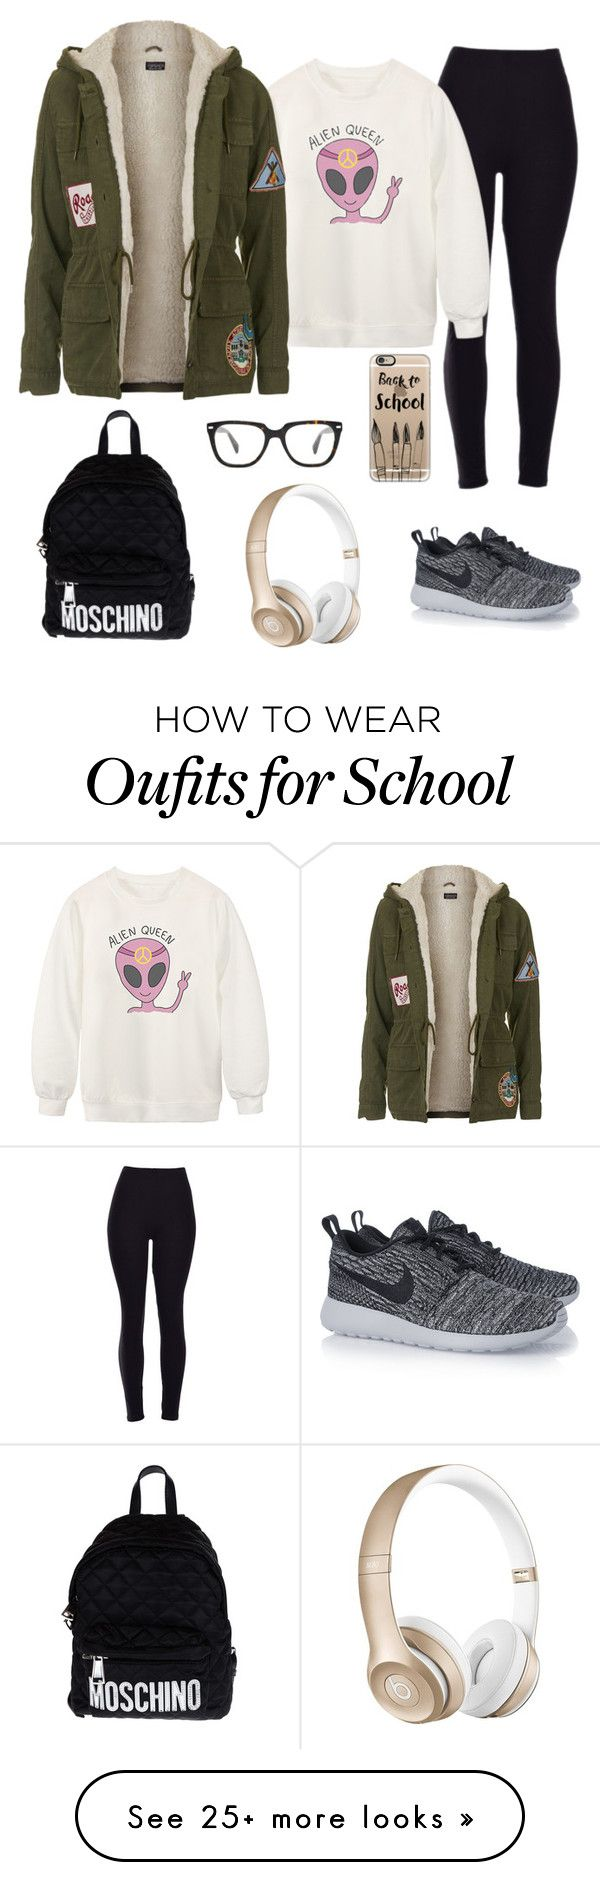 """Back to school"" by jordangirl2313 on Polyvore featuring Chicnova Fashion, Topshop, NIKE, Moschino, Casetify, Beats by Dr. Dre, women's clothing, women's fashion, women and female"